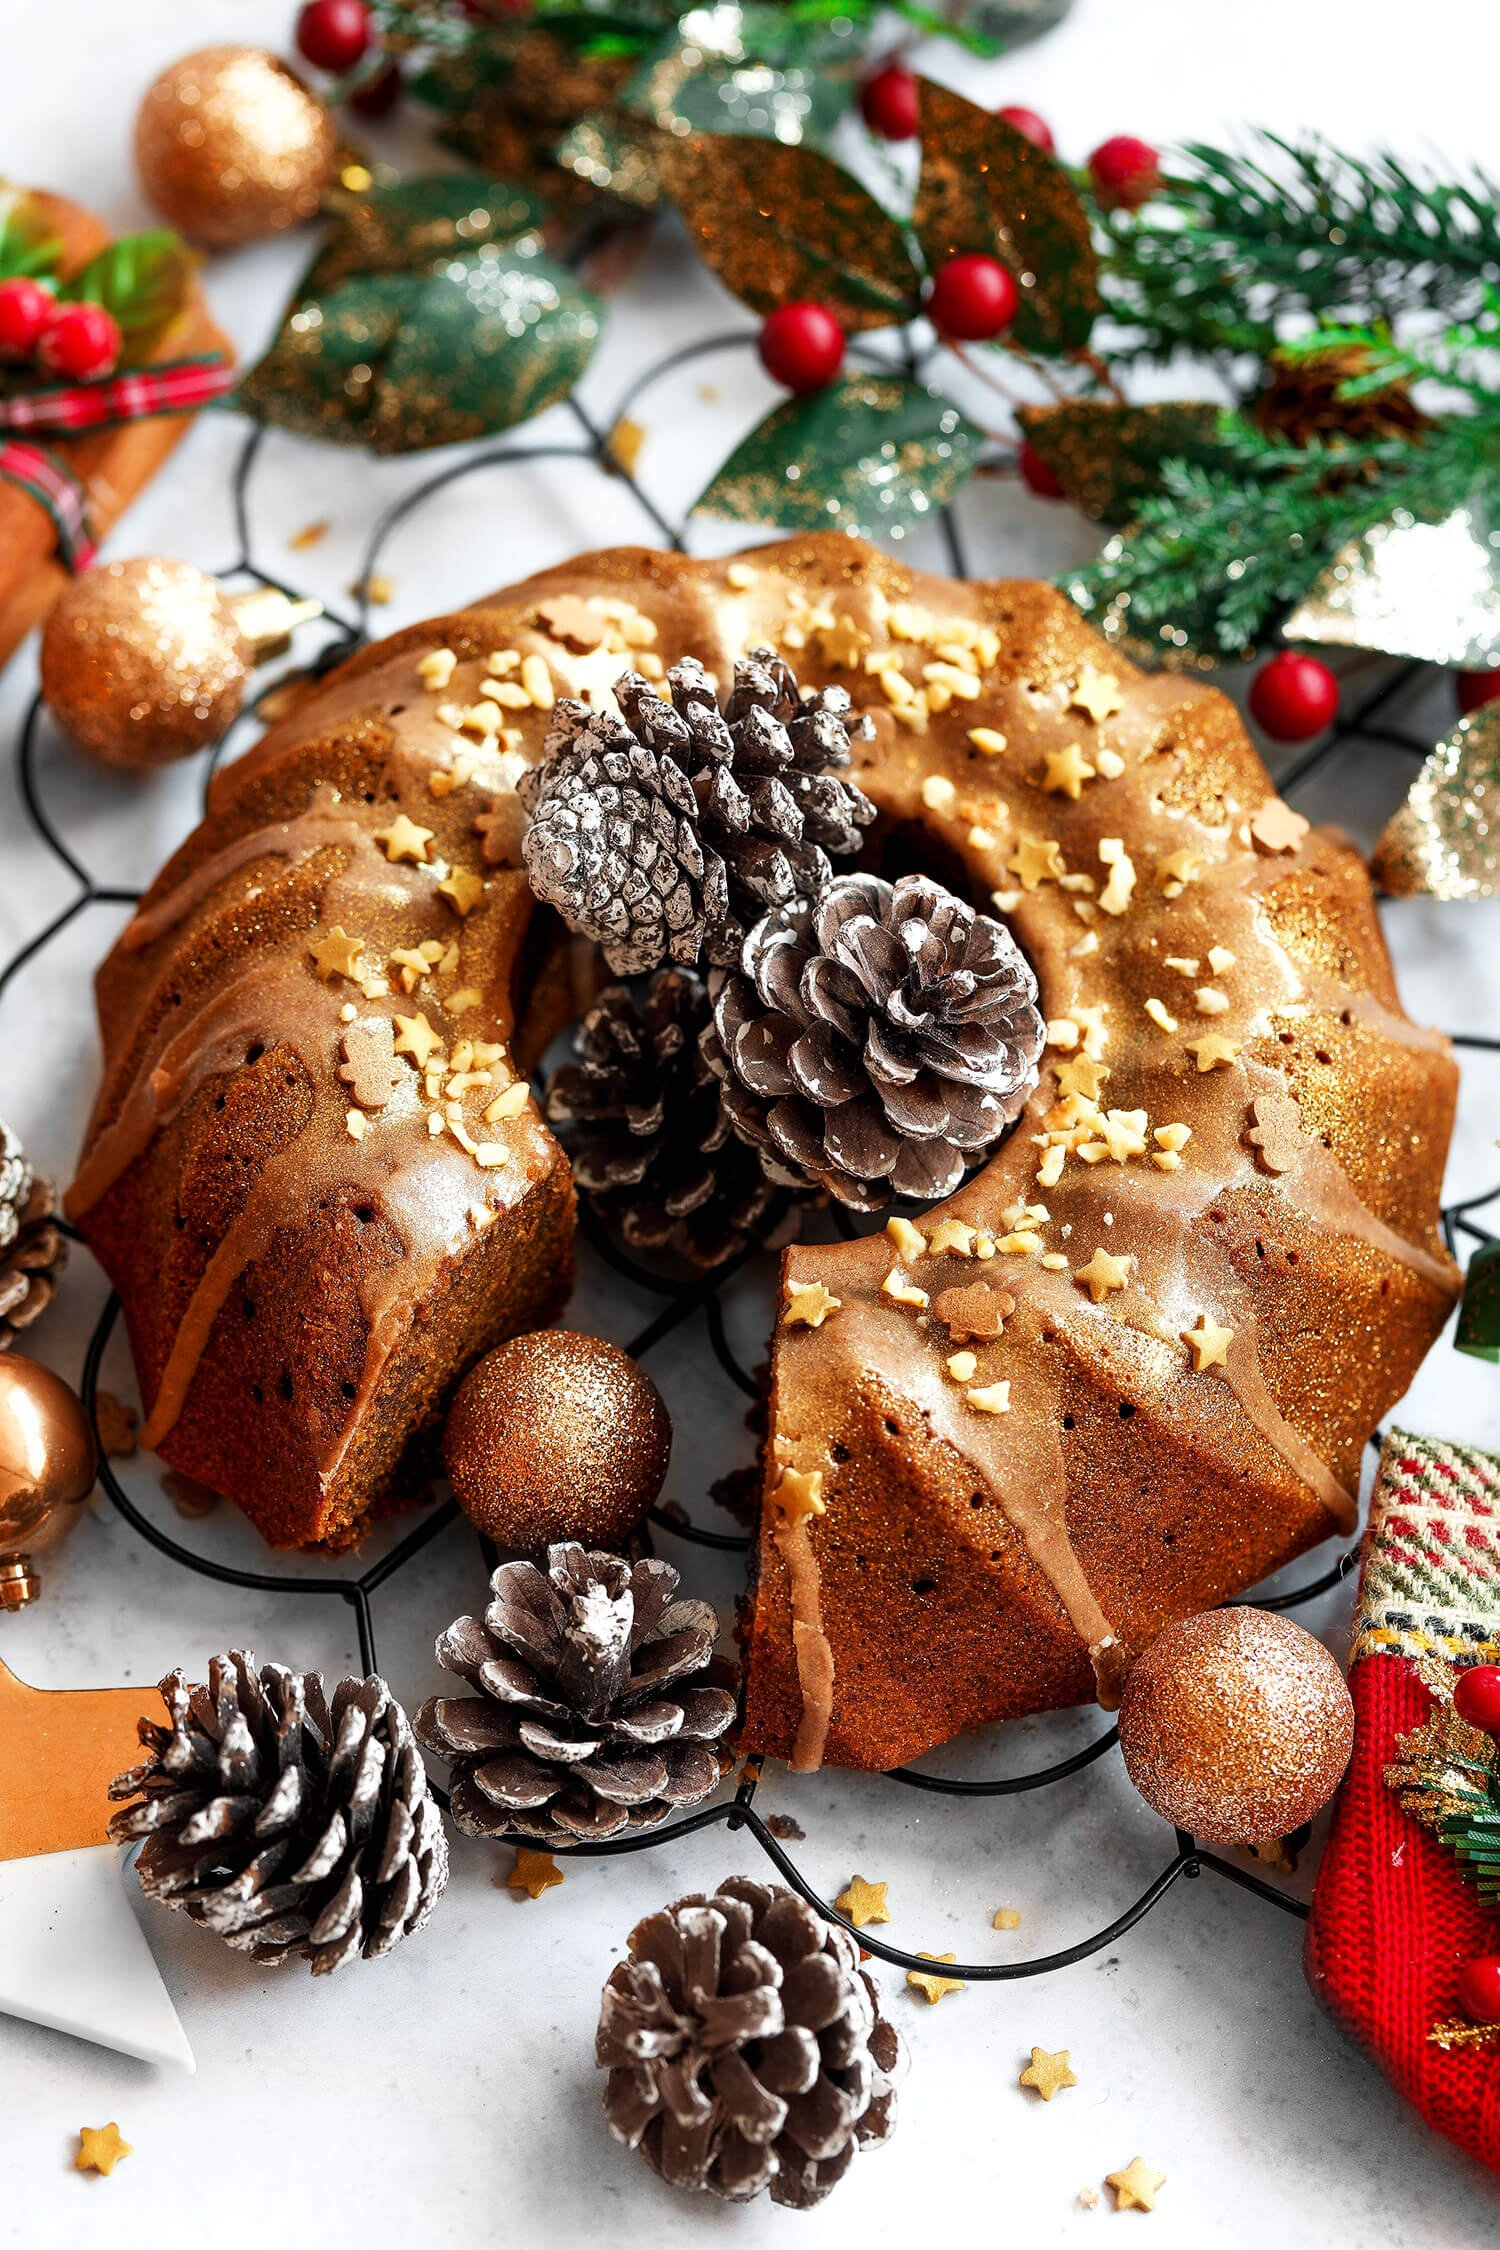 Festive Gingerbread Bundt Cake